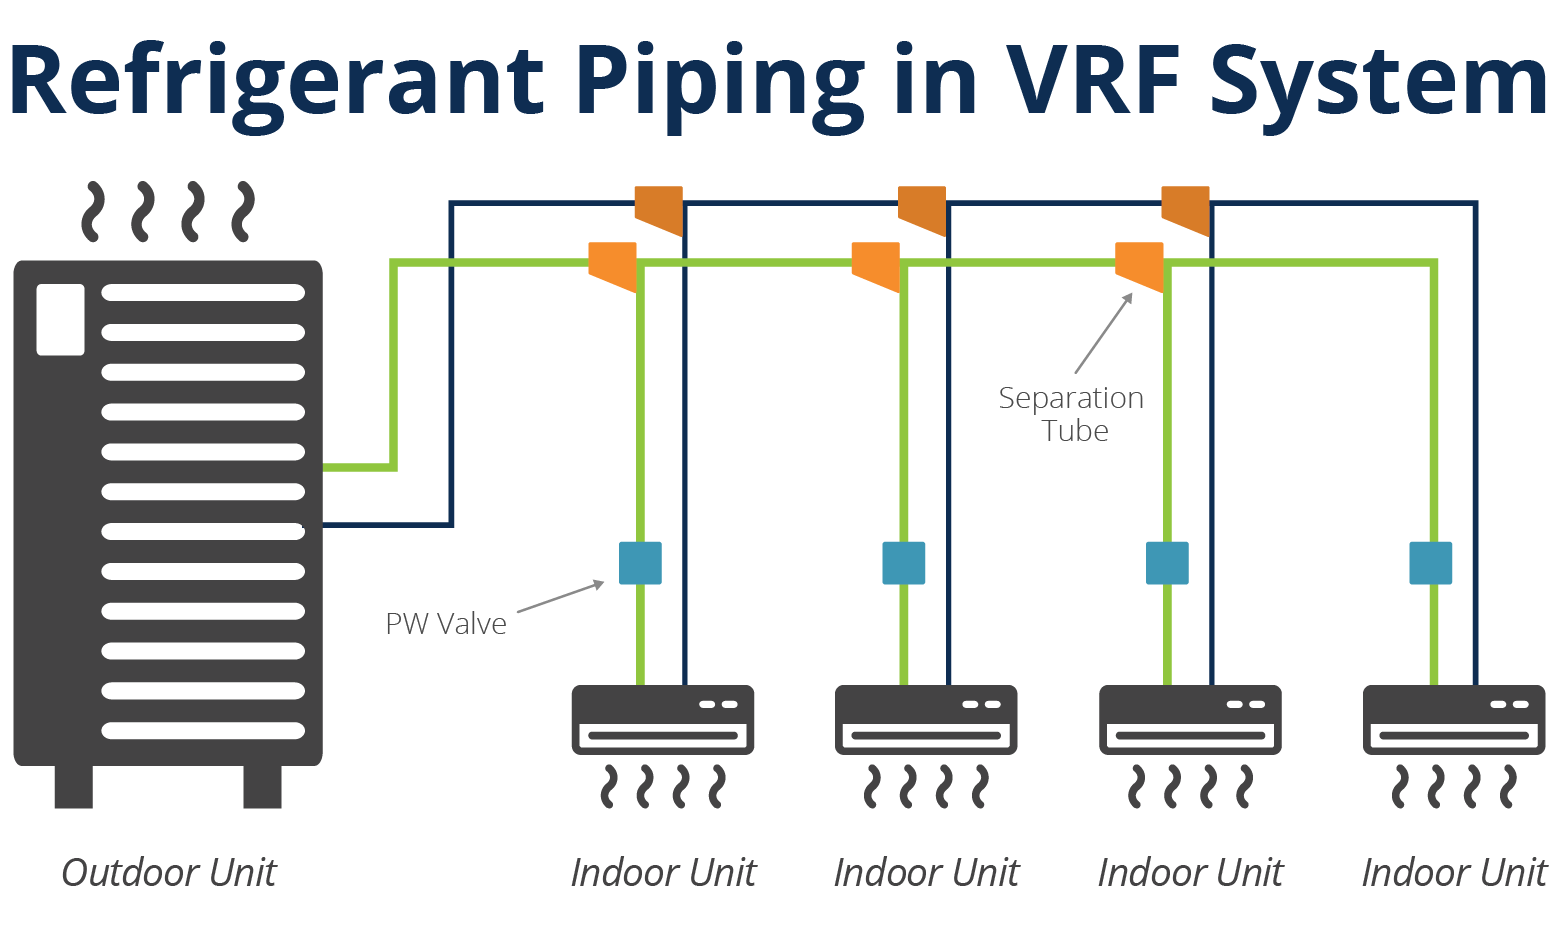 piping diagram for vrv system wire diagram database  piping diagram for vrv system #7